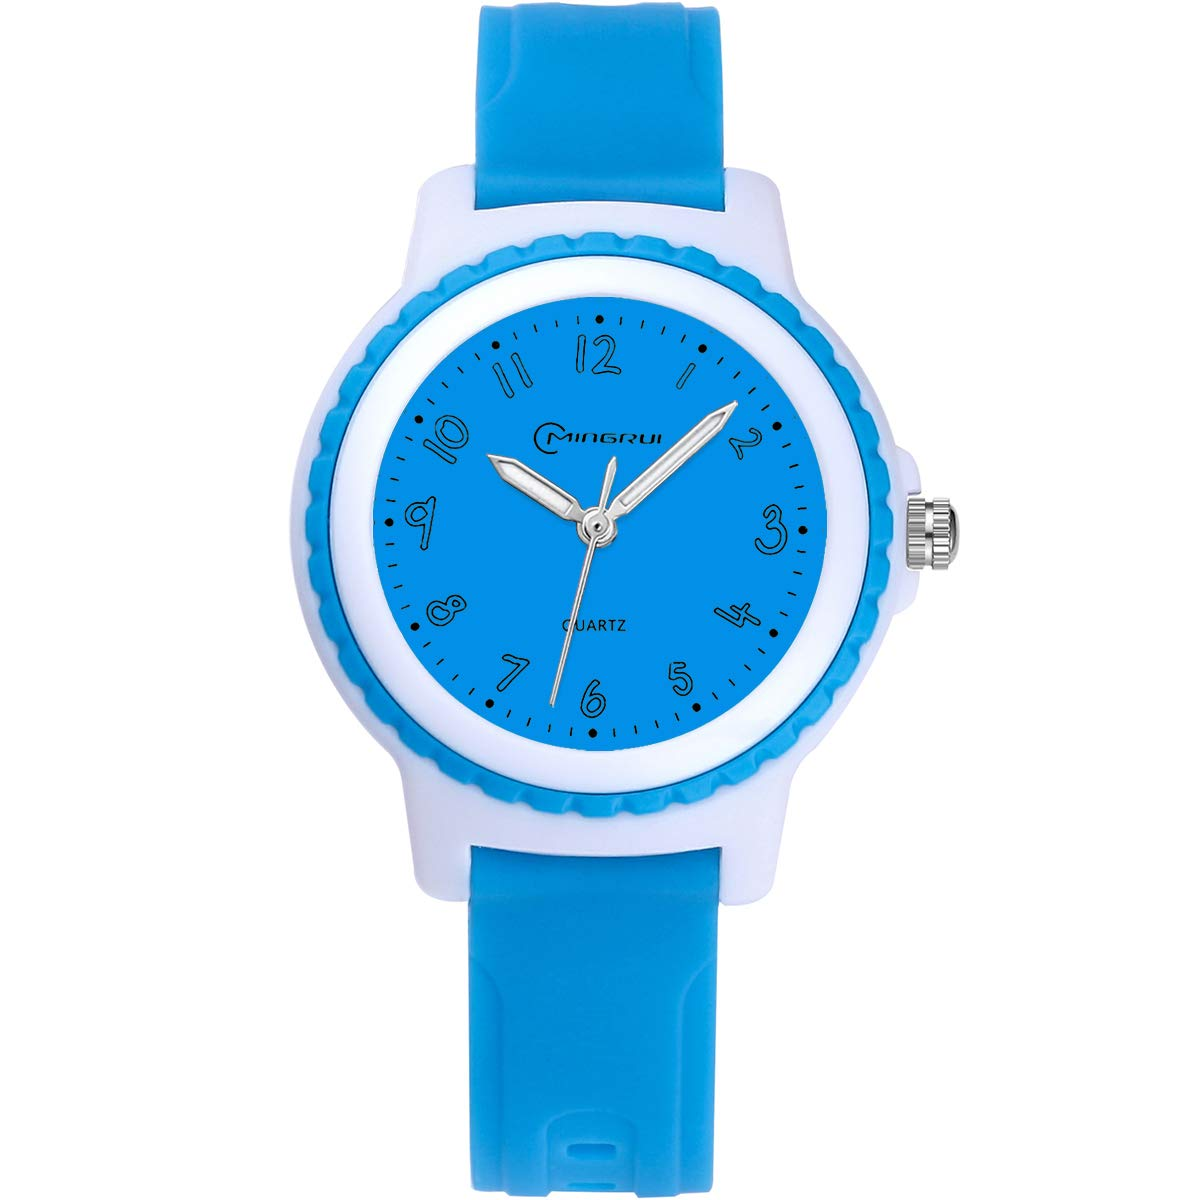 Children Analog Watch Waterproof Time Teaching Boys Girls Watch Soft Band Wrist Watch for Kids